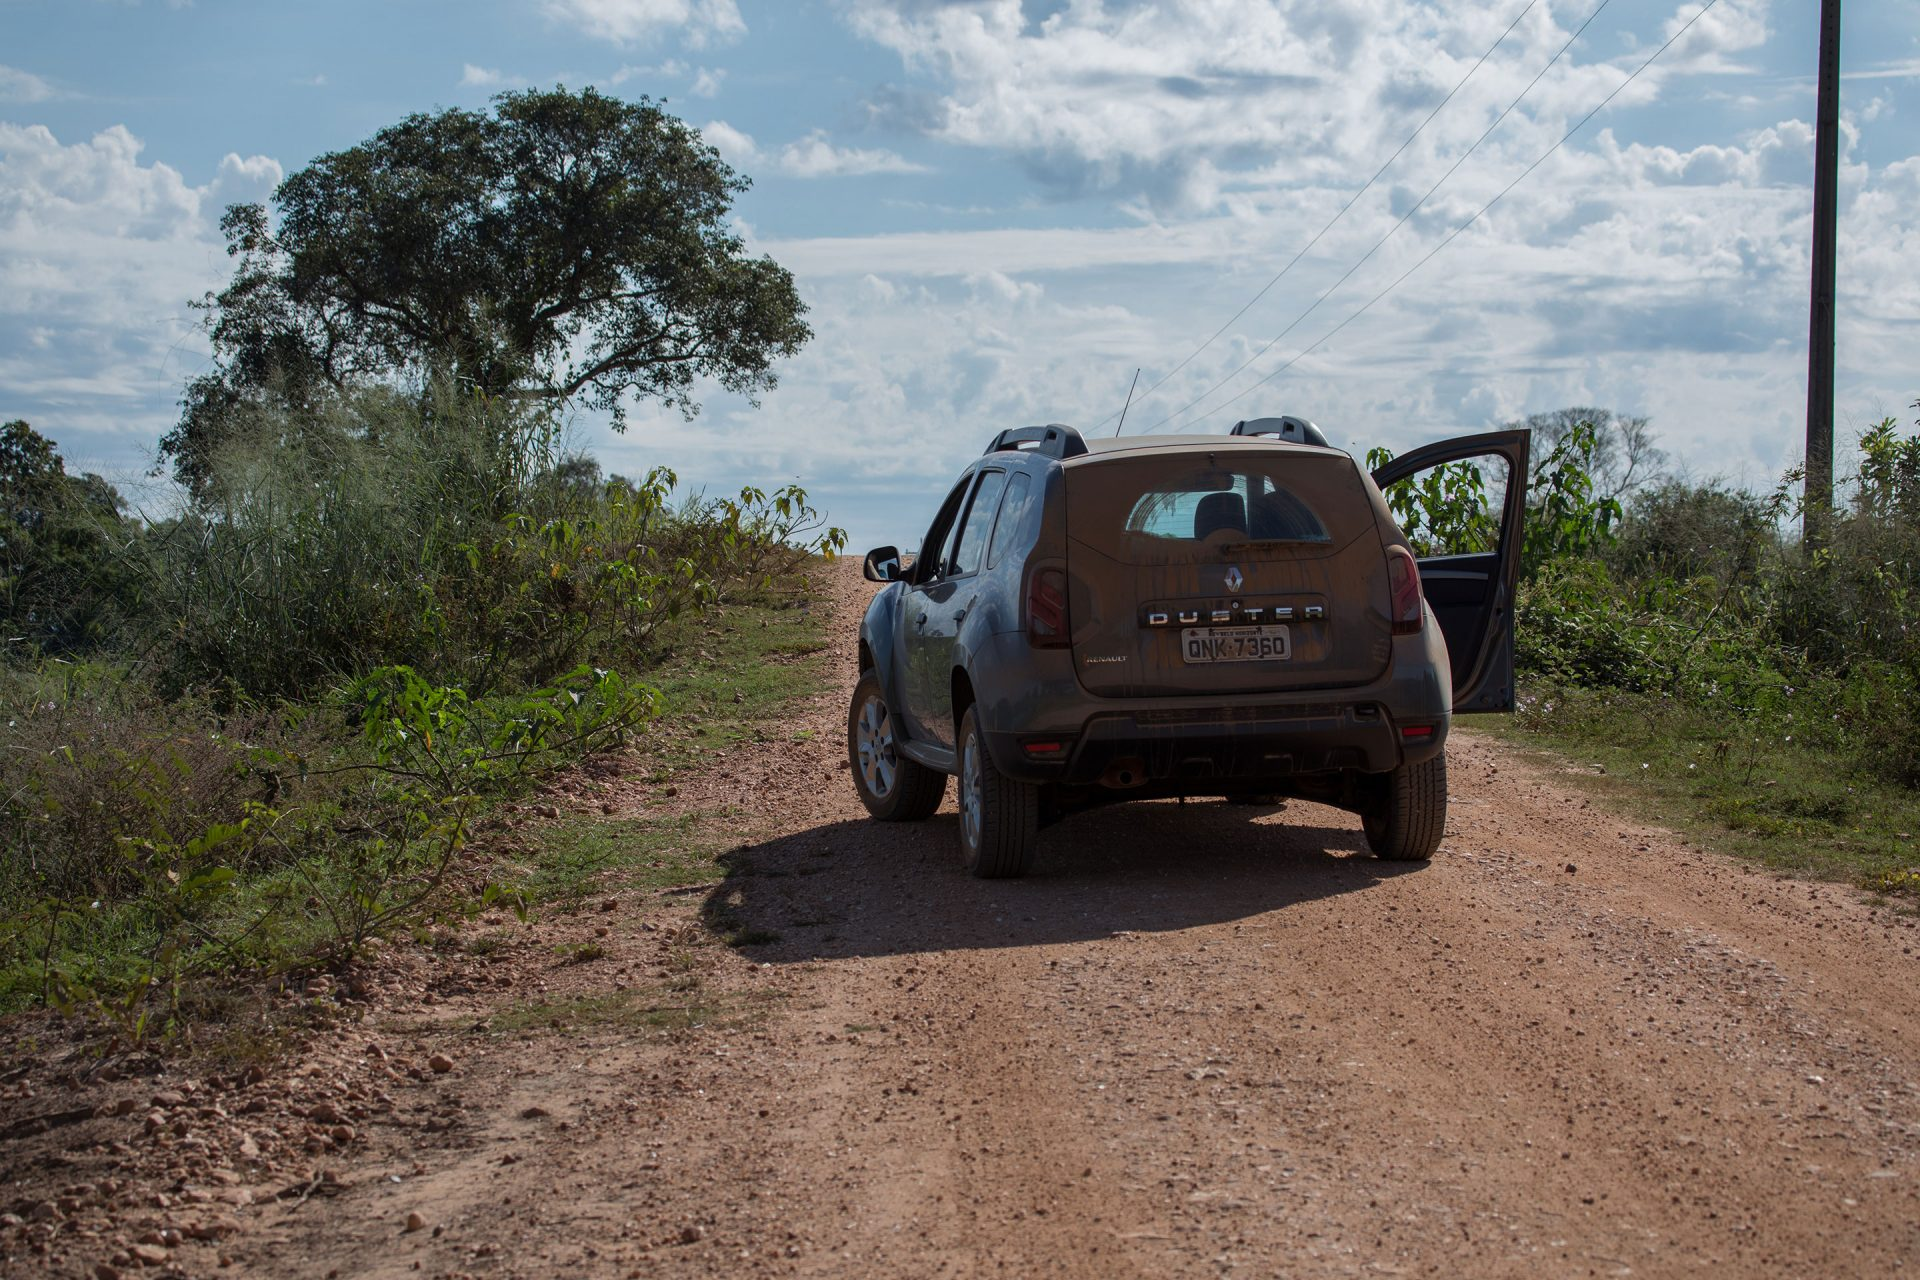 The transpantaneira, the road through the northern Pantanal, was  mostly flooded in May. There were hardly any other visitors to the area and we experienced dry, dusty conditions.